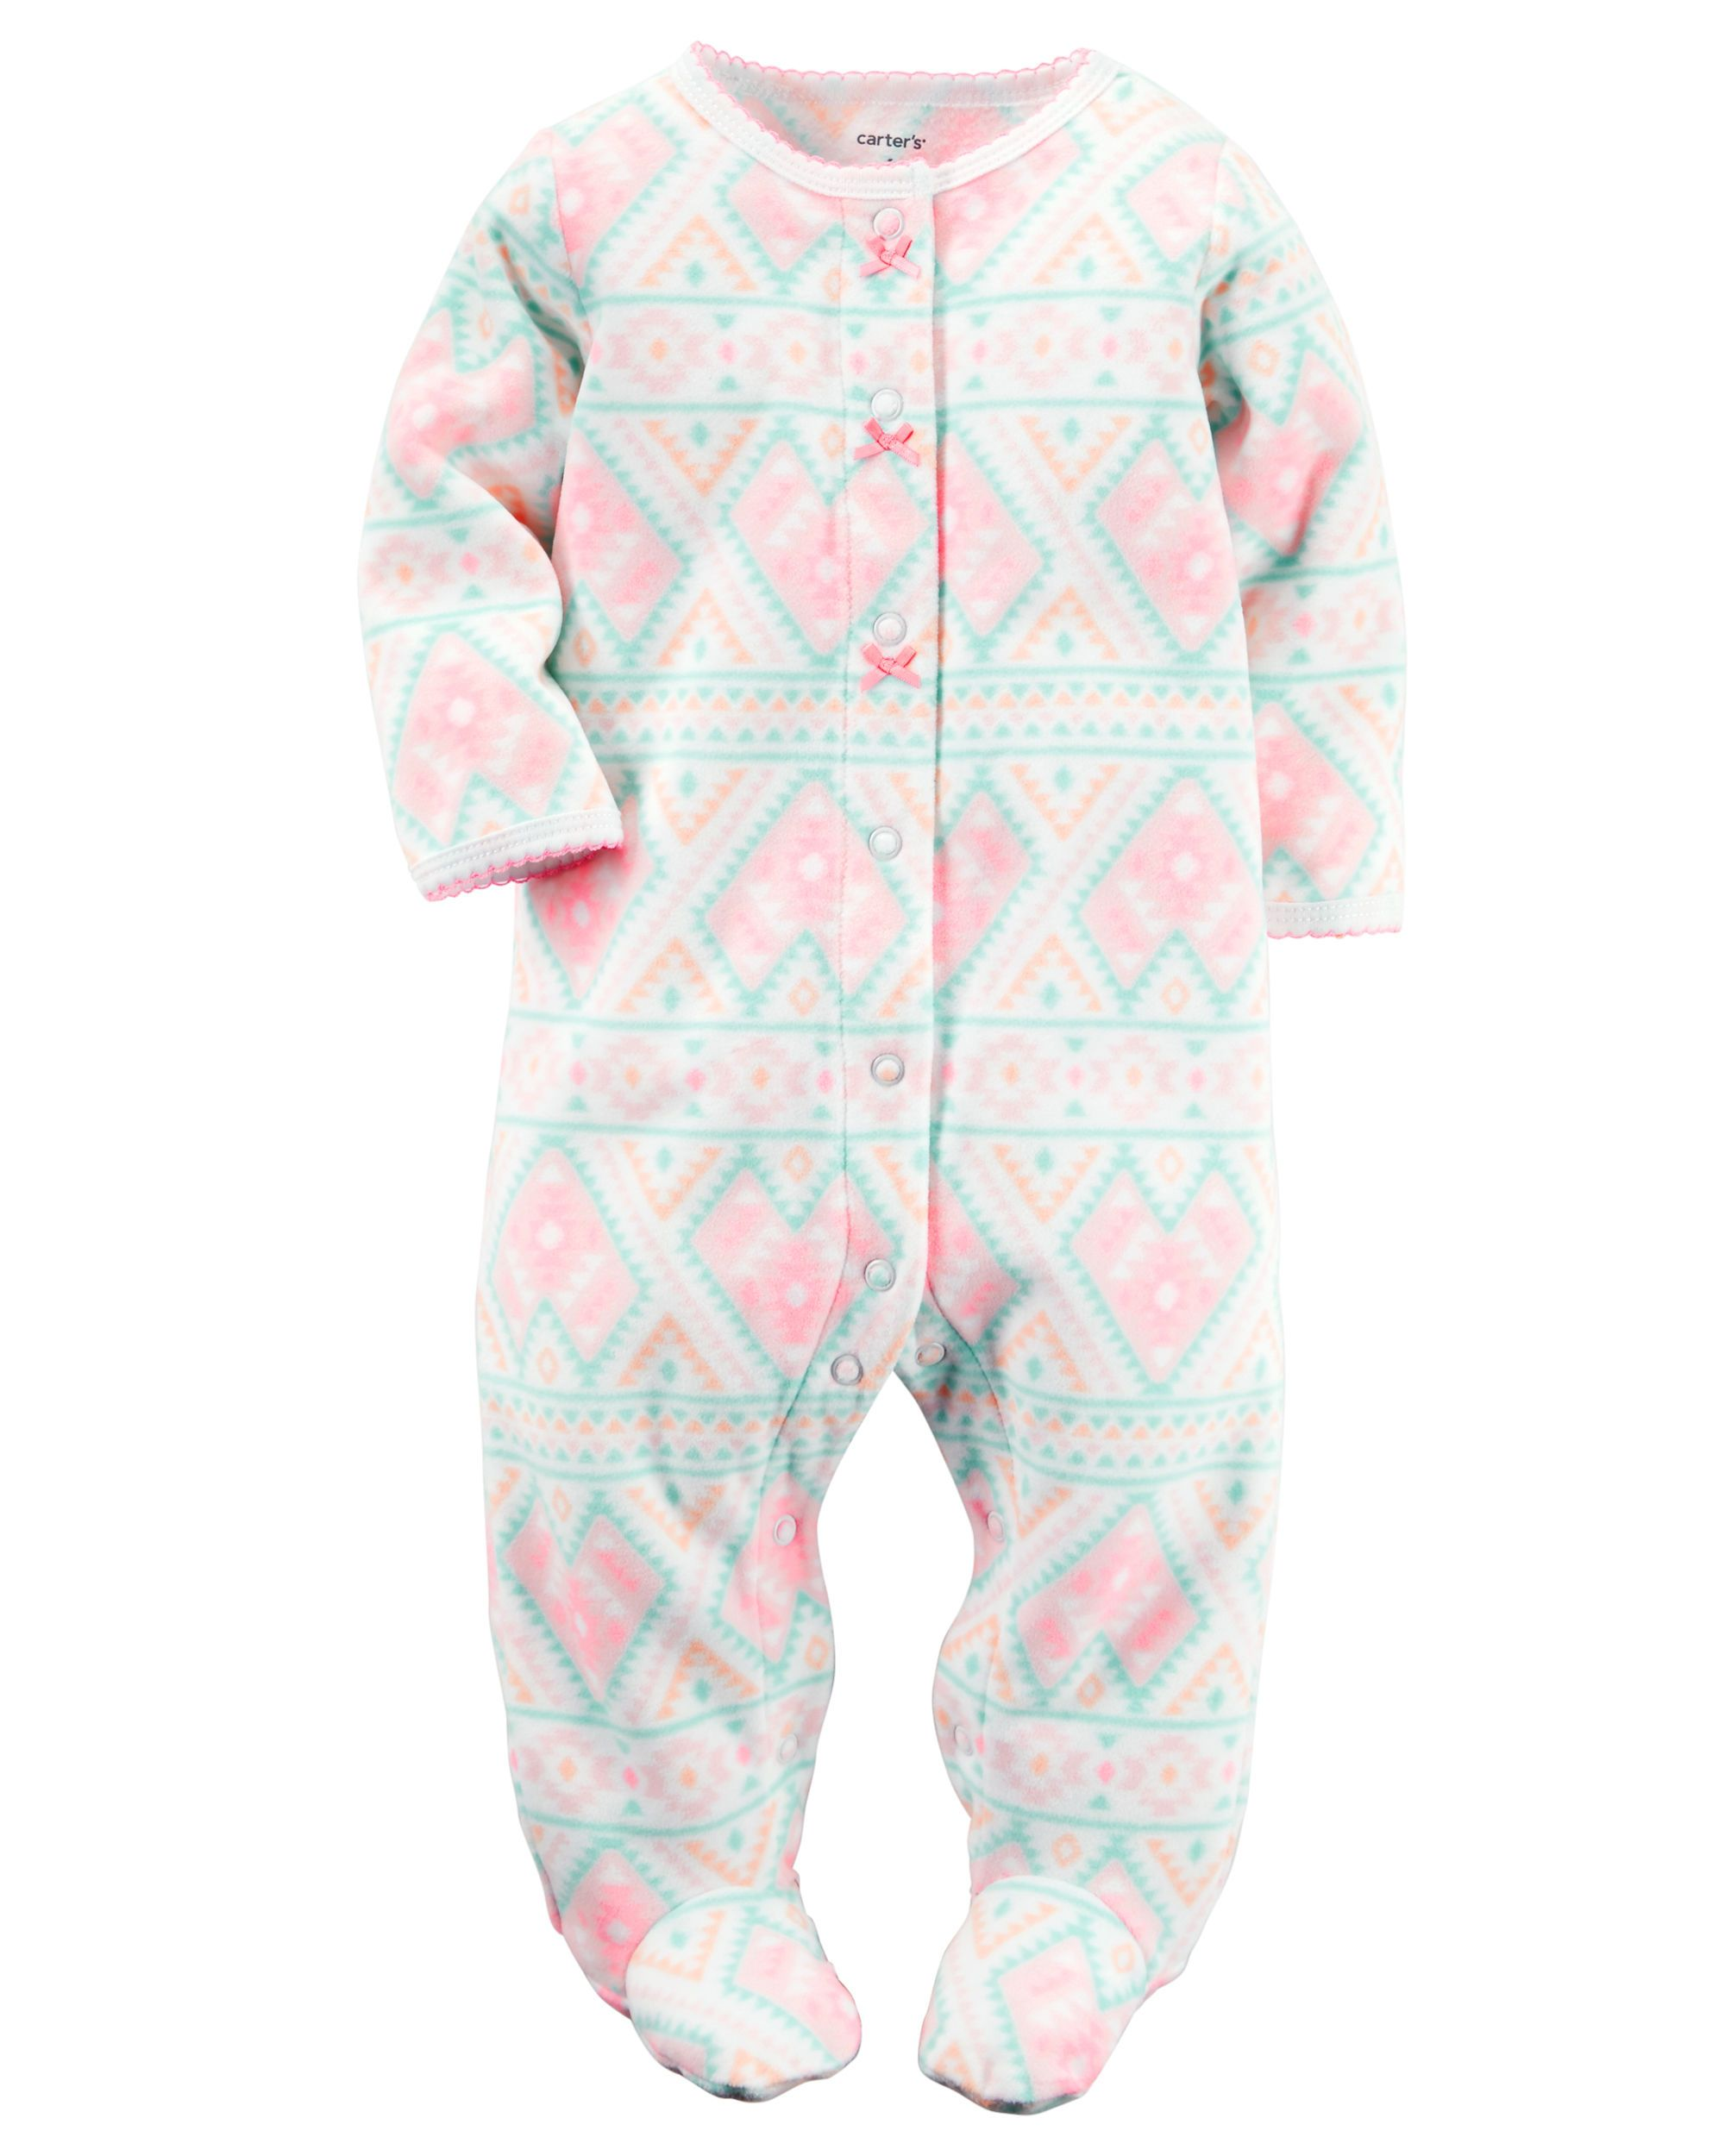 880408cdf Baby Girl Fleece Snap-Up Sleep & Play | Carters.com | Carter's ...